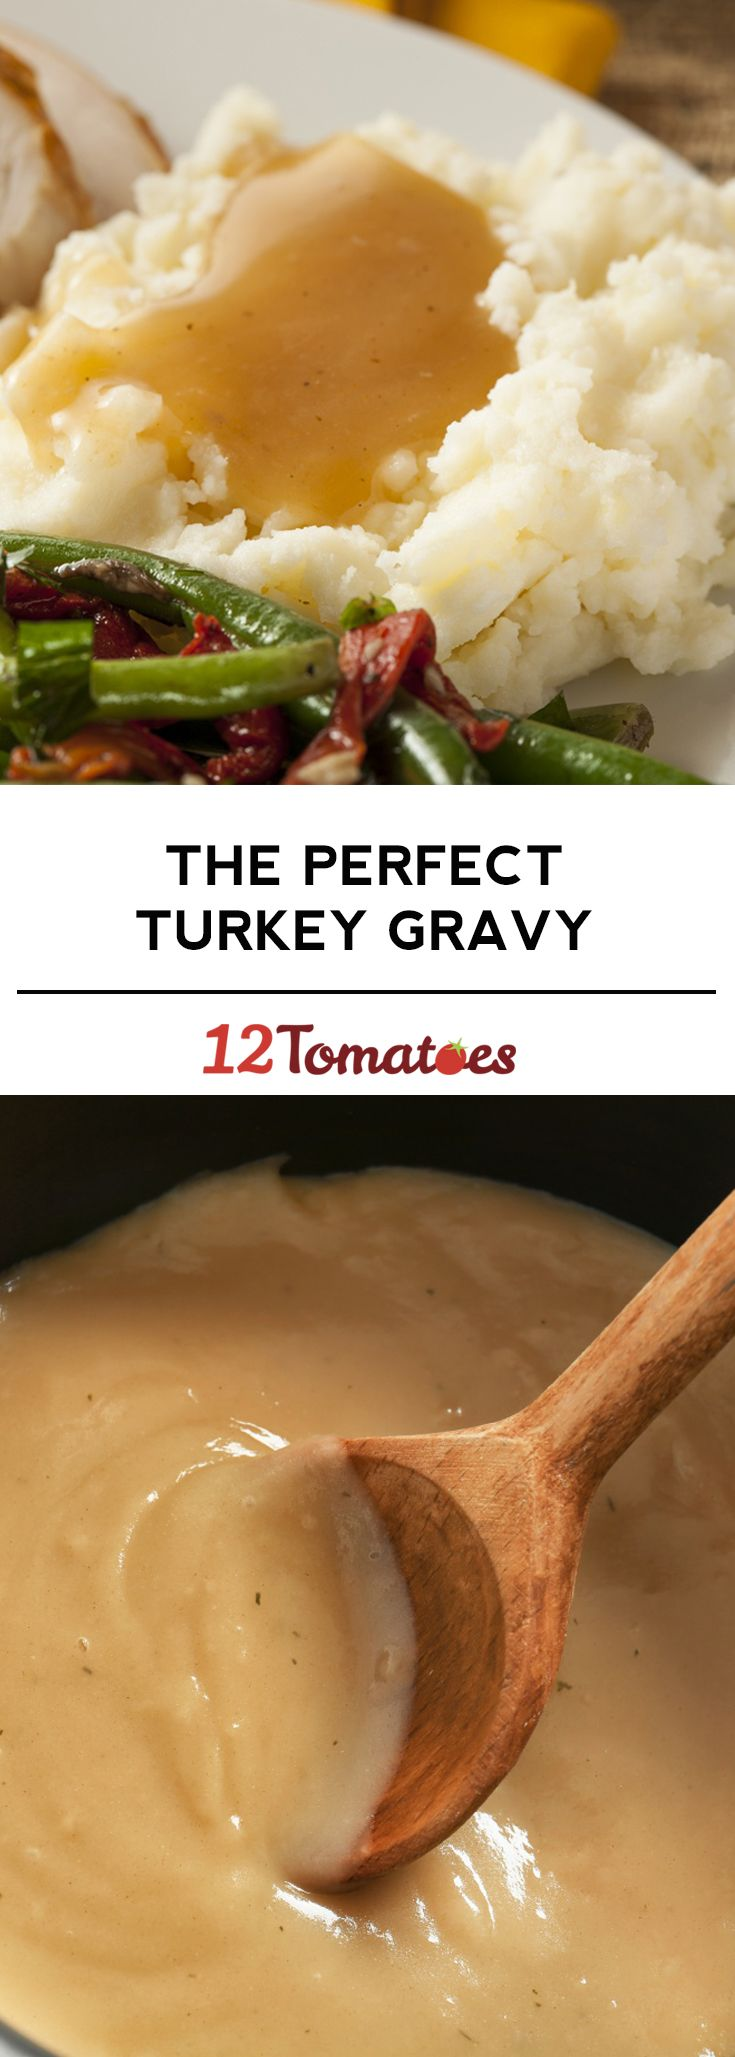 The Perfect Turkey Gravy - a Thanksgiving essential!